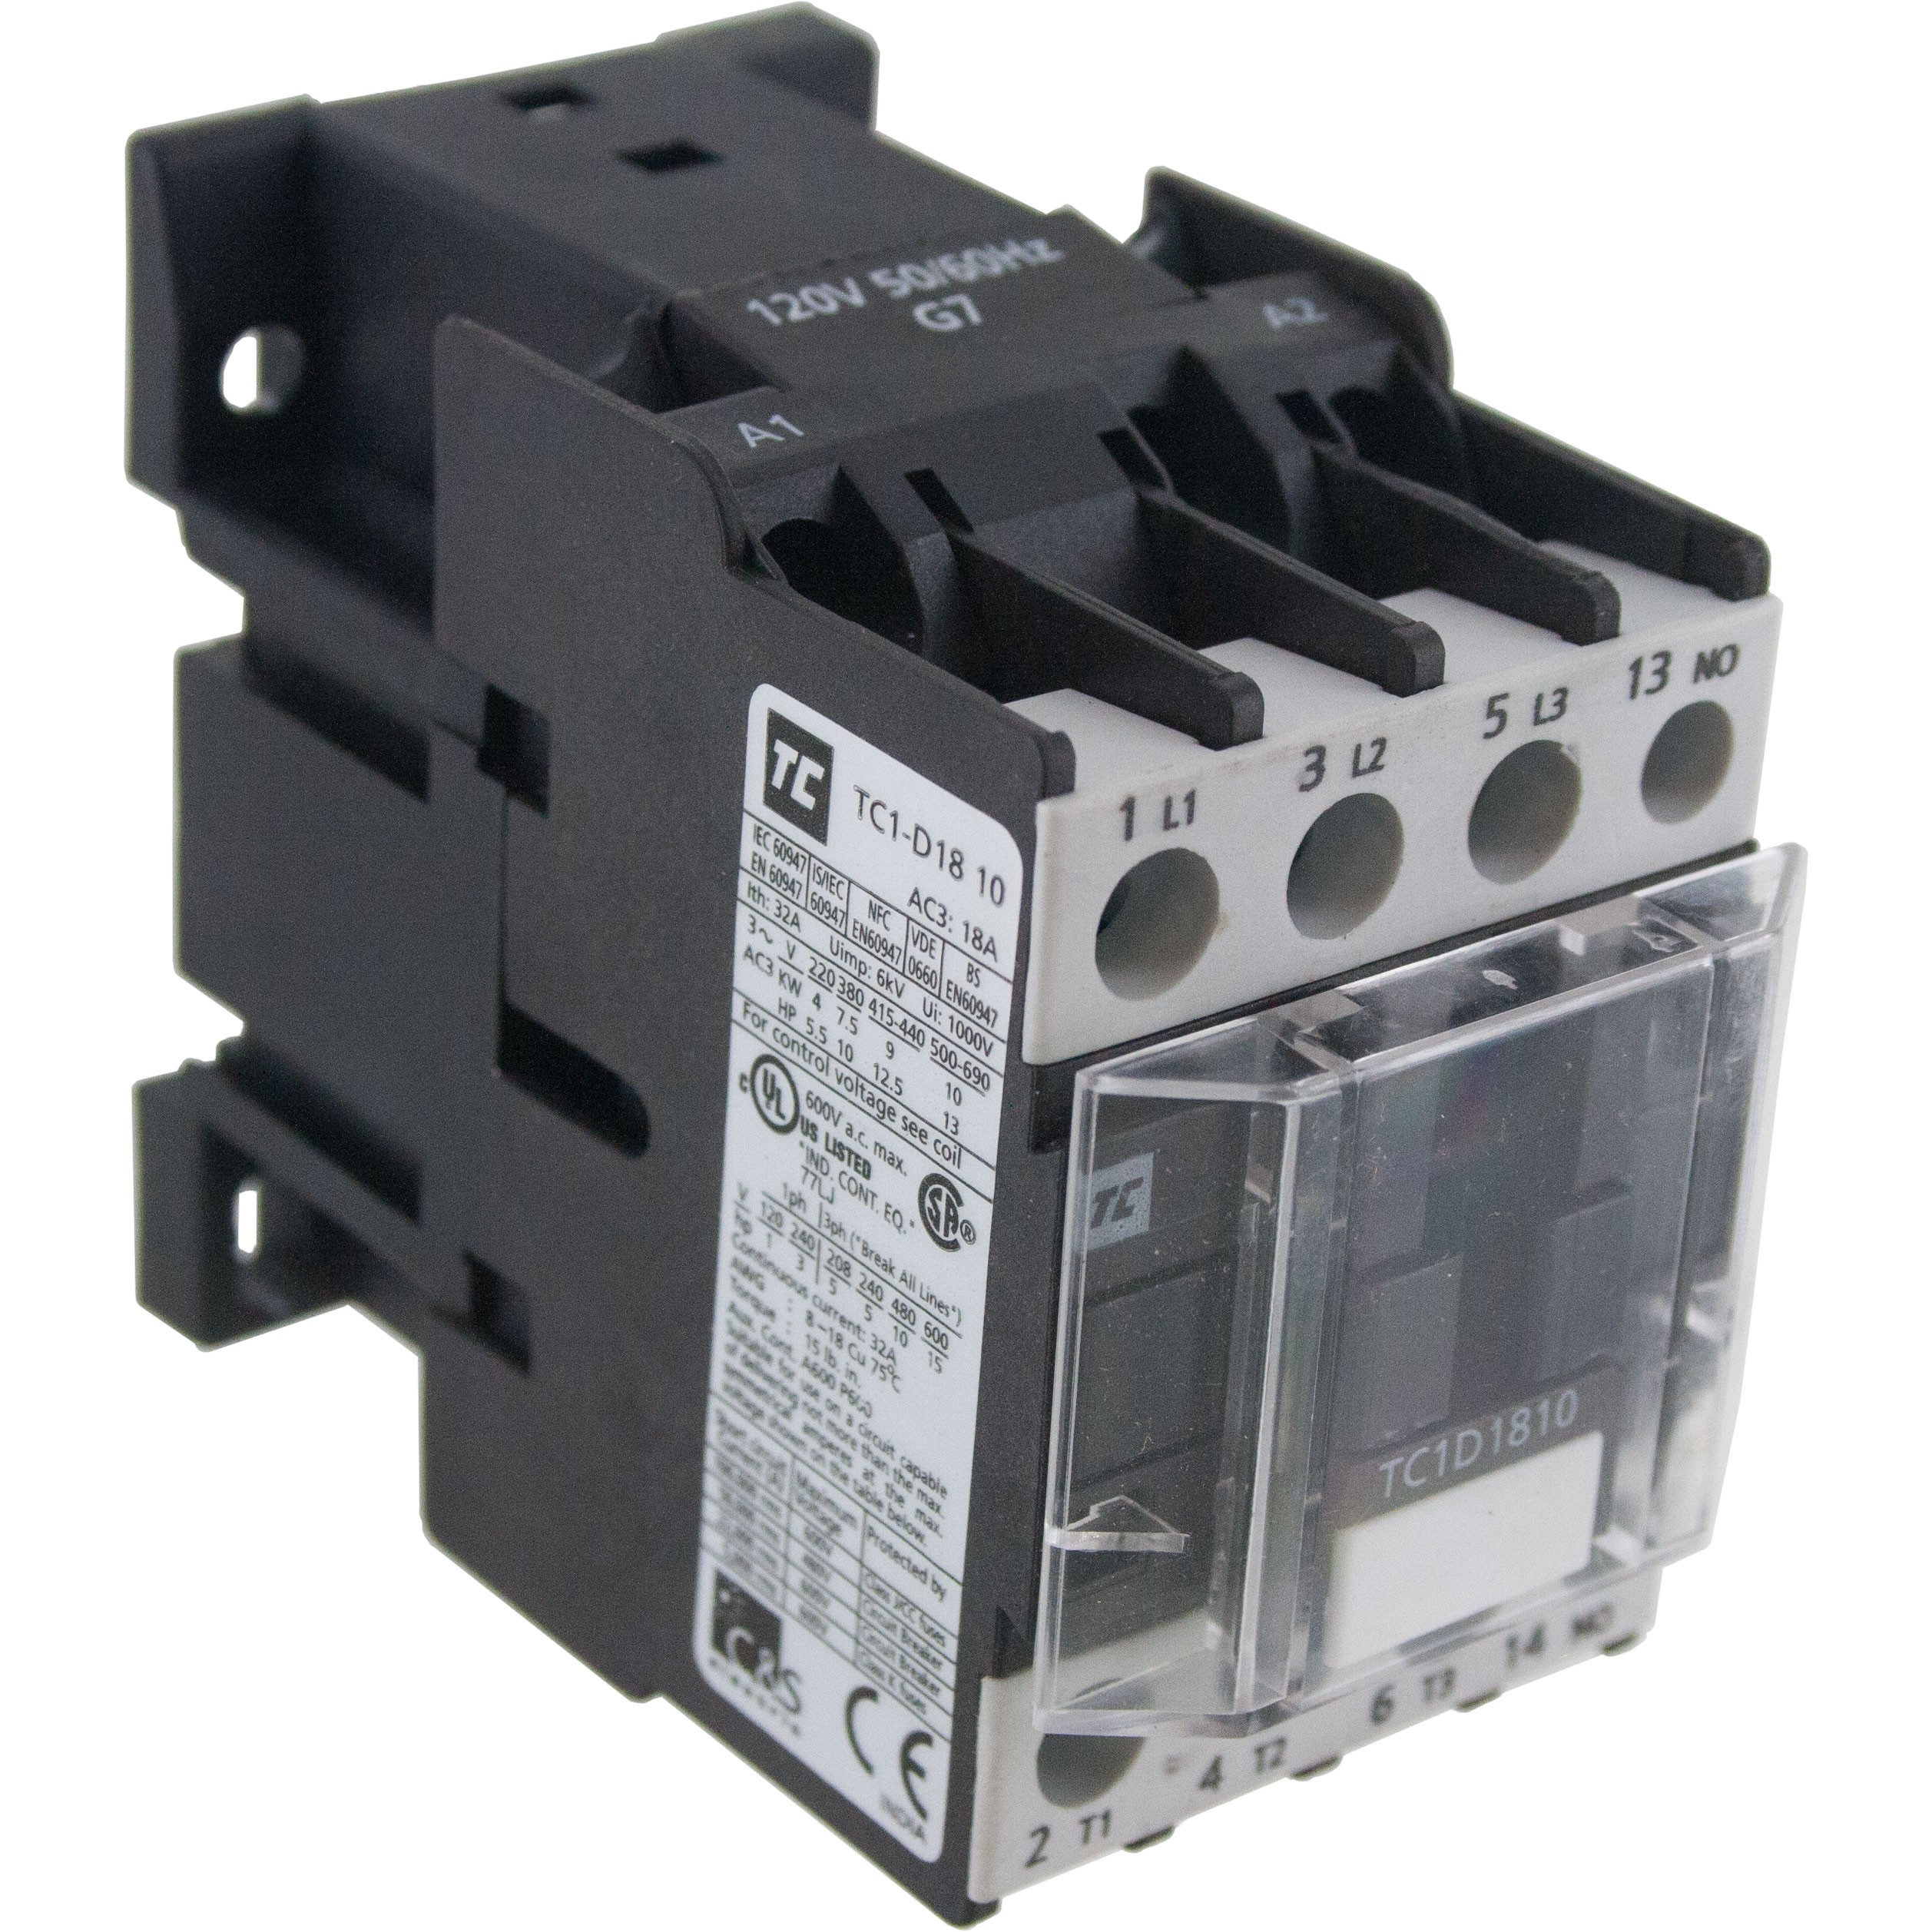 3 Pole Contactor 18 Amp 575 Vac Coil Angle